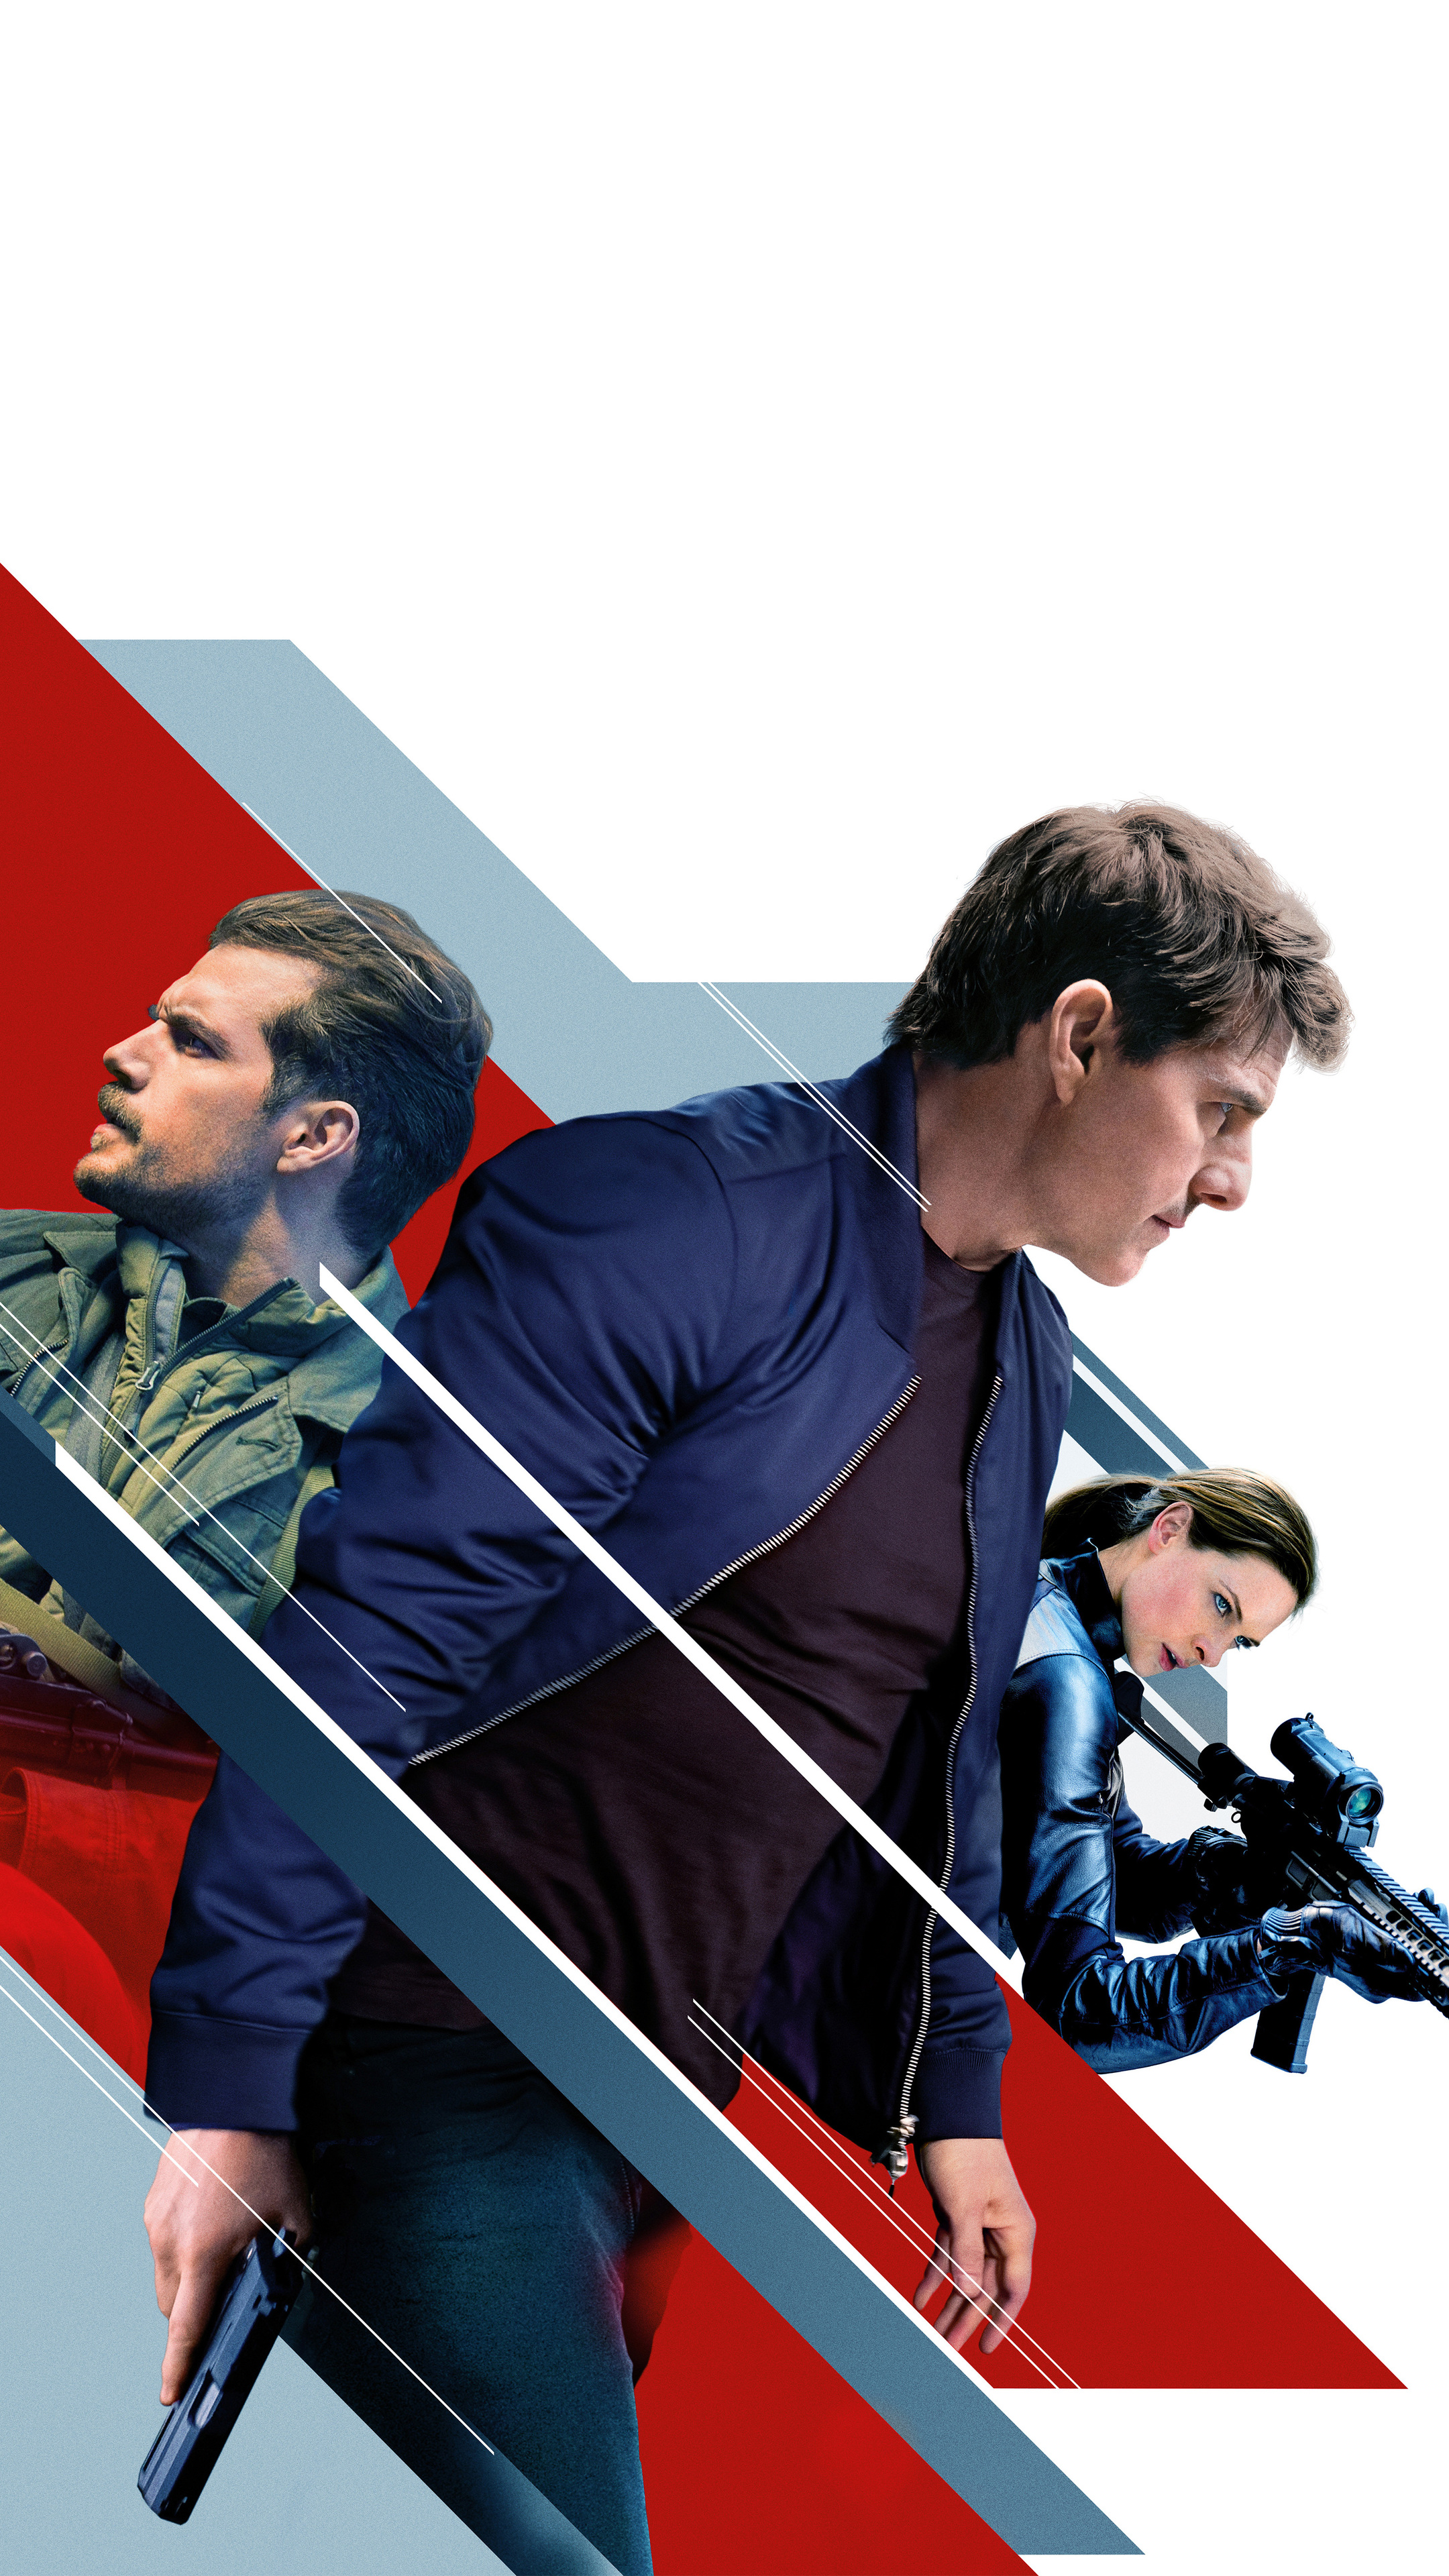 mission-impossible-fallout-10k-na.jpg